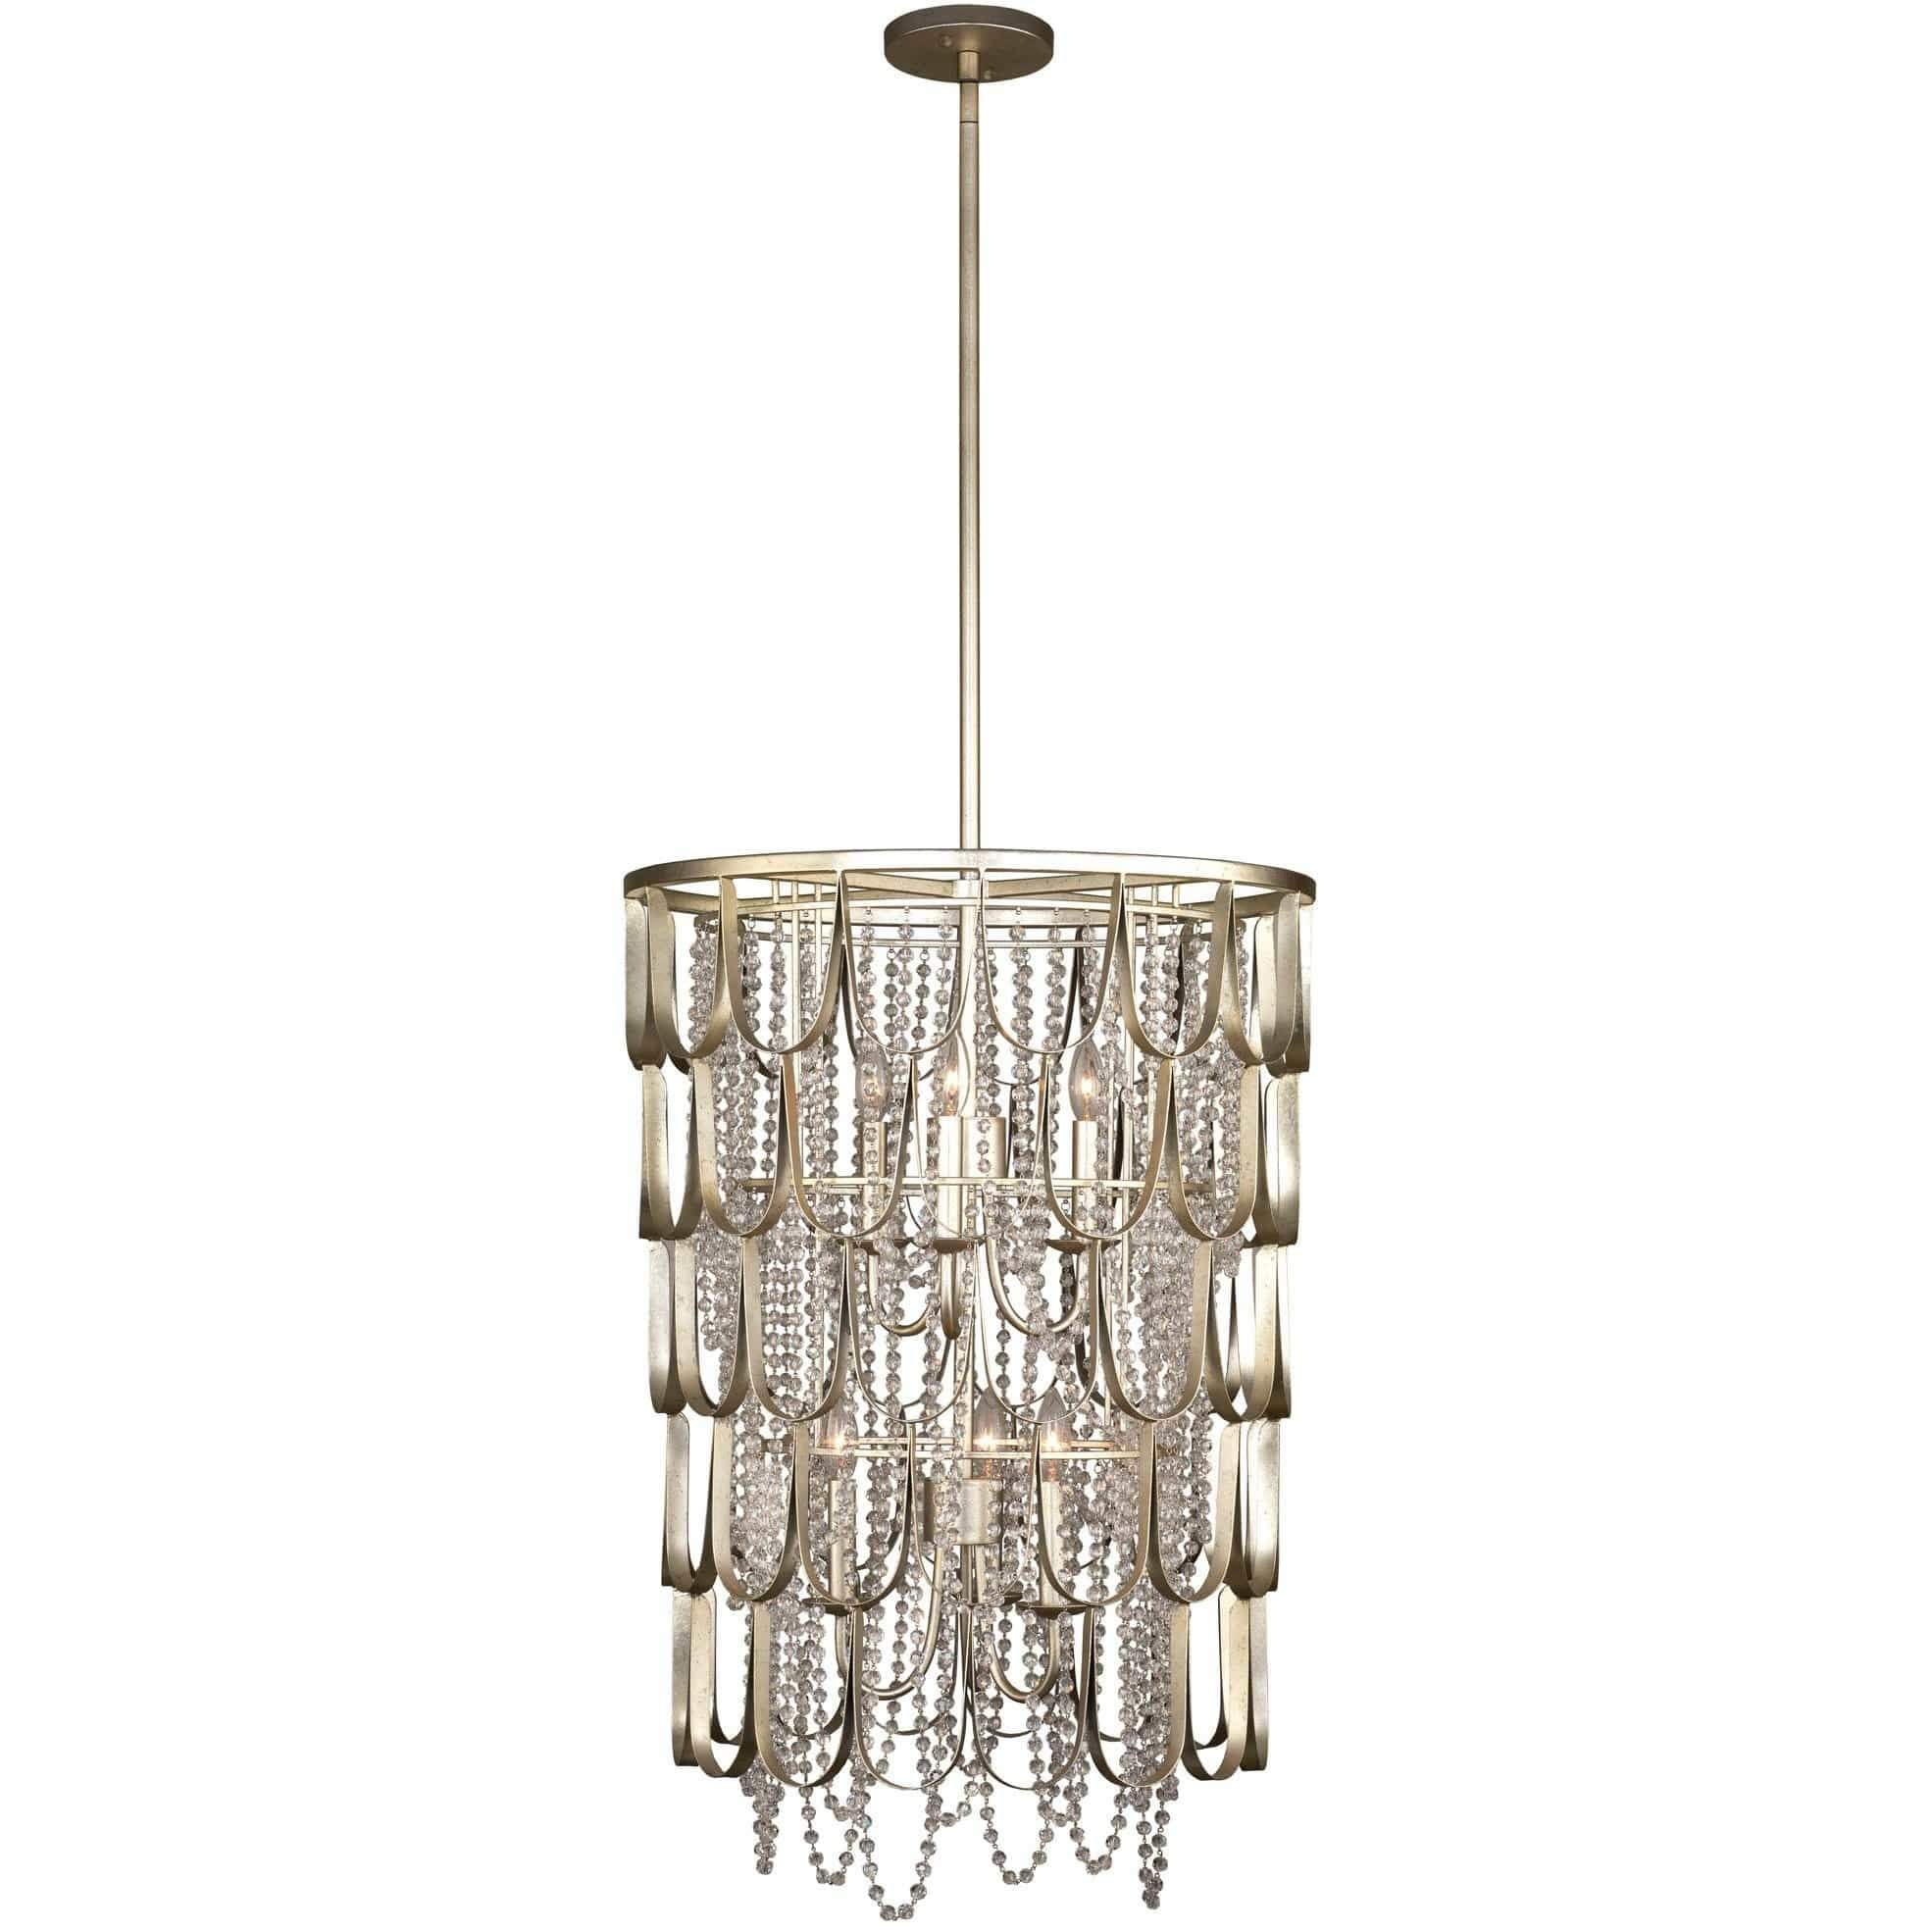 Kalco Lighting Foyers Champagne Silver Leaf Dulce 22 Inch Foyer By Kalco Lighting 508850